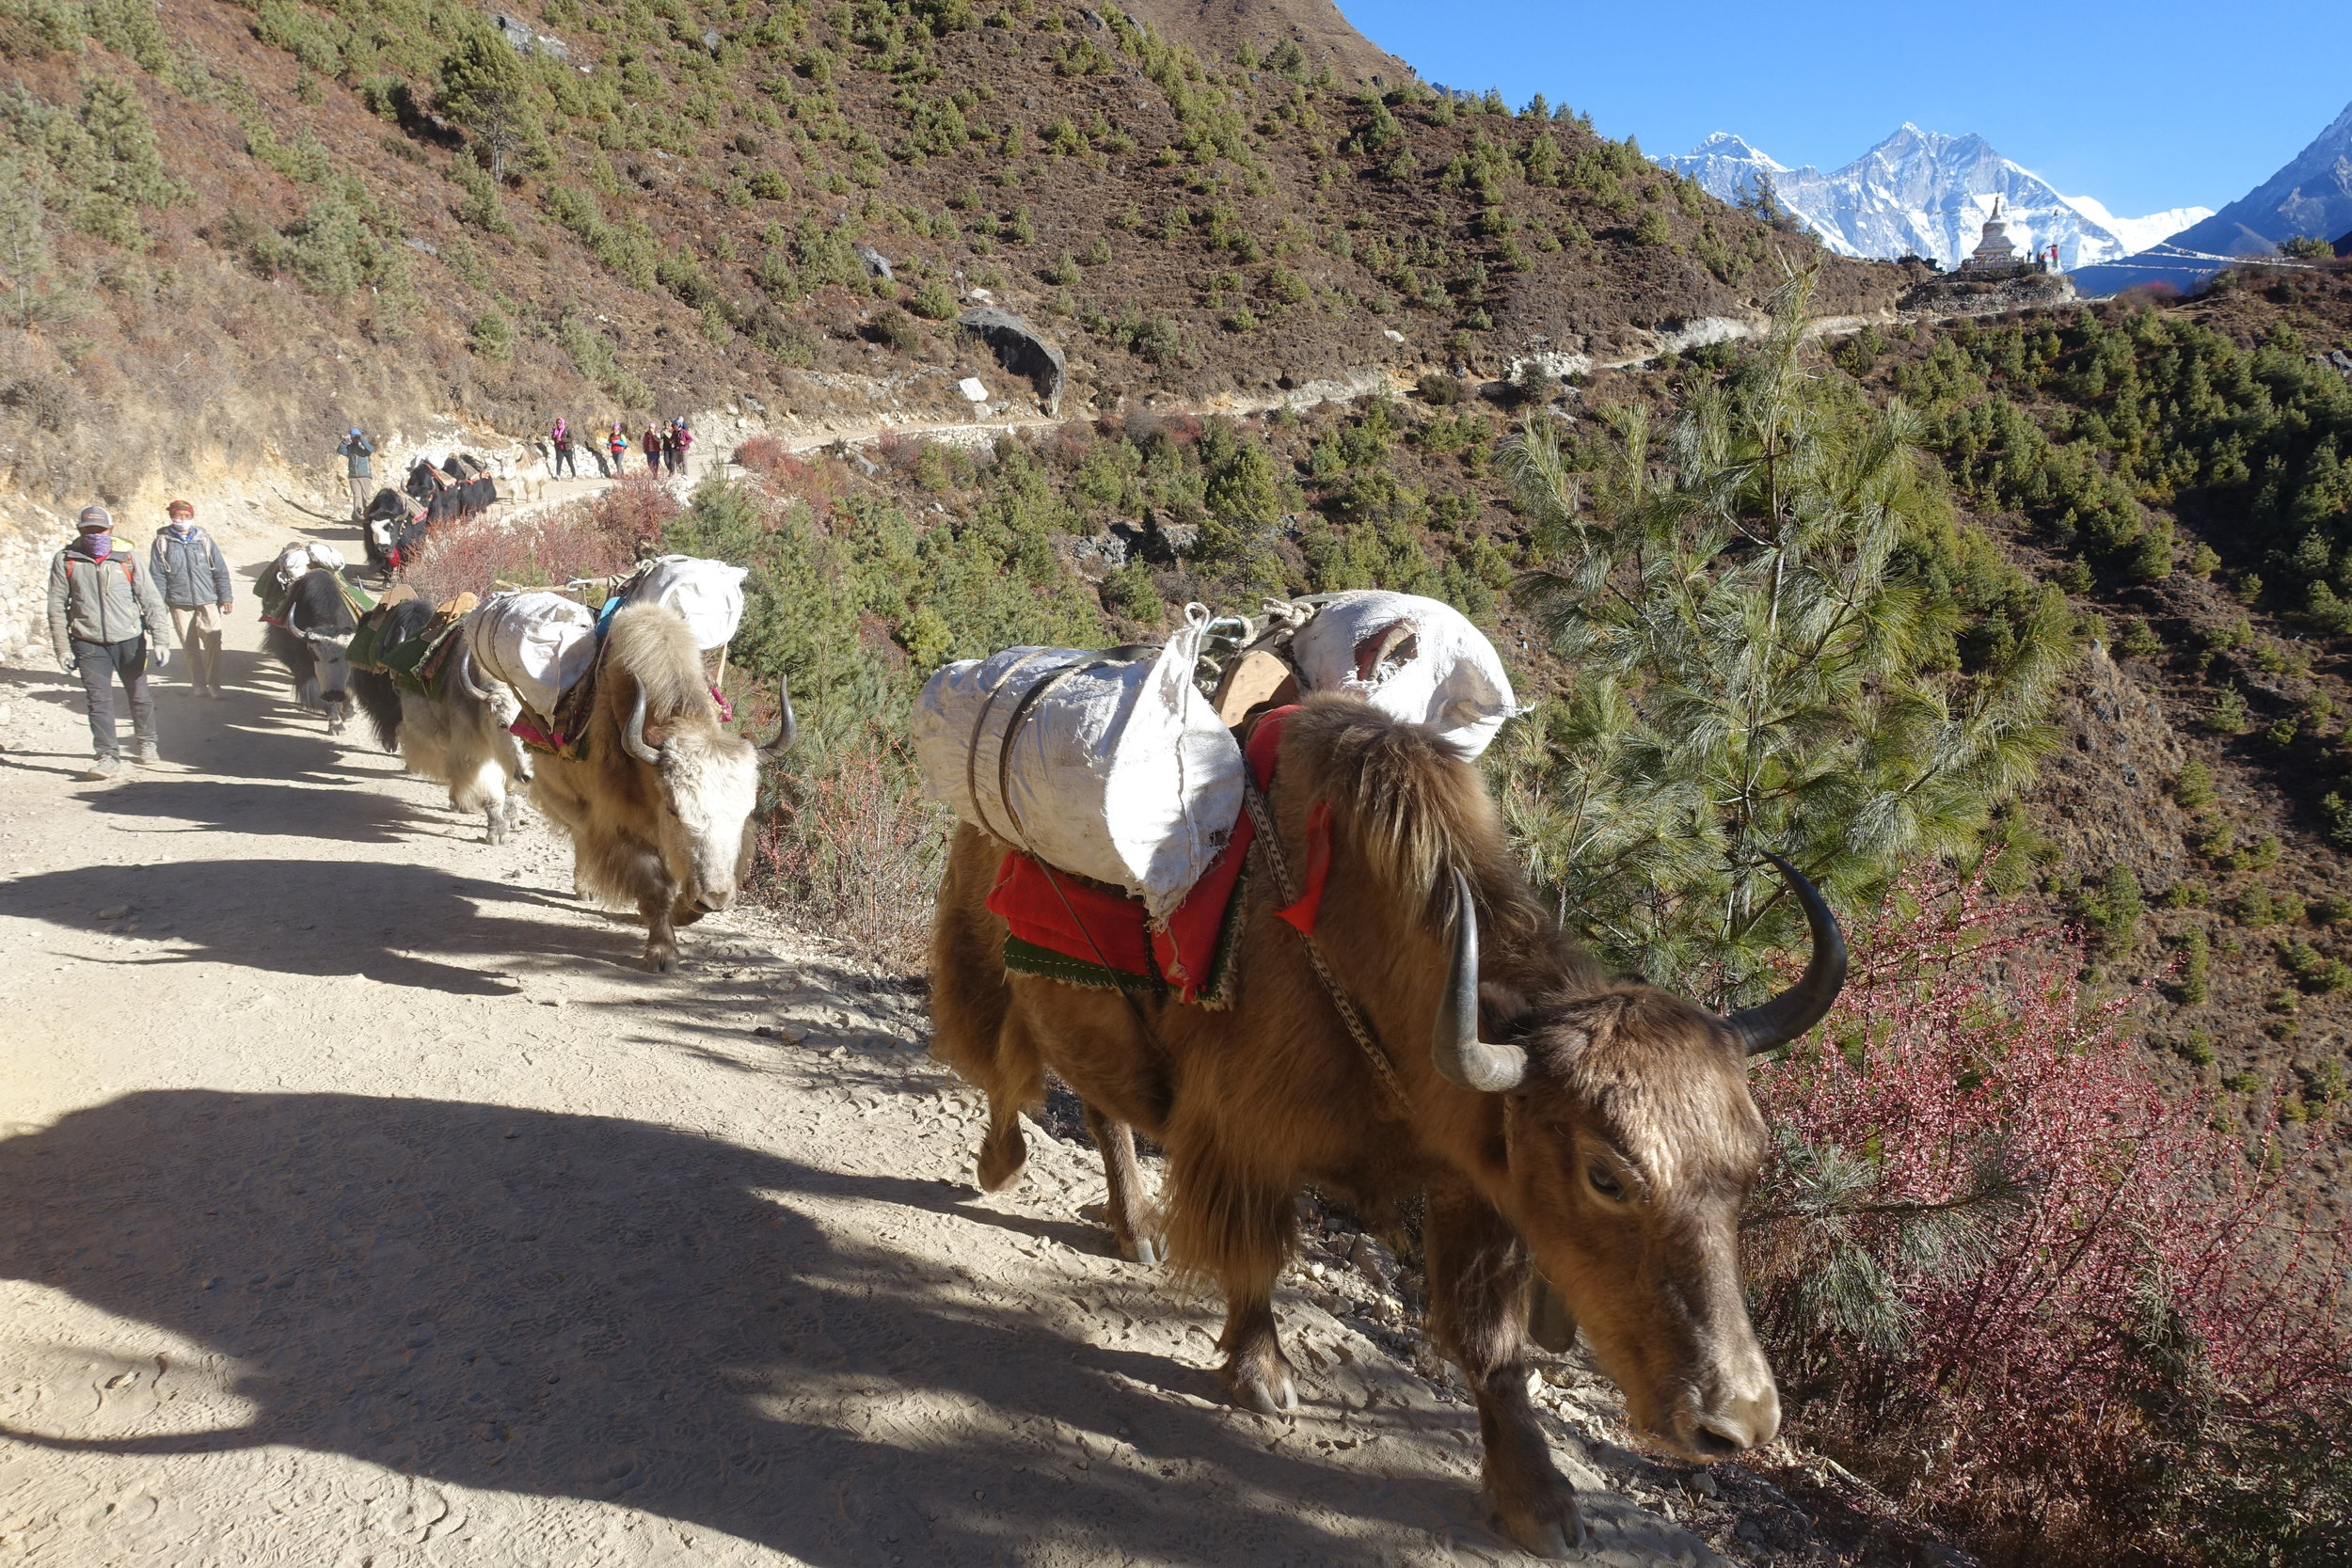 Naks and Yaks crossing the trail. Note the human-folk sticking firmly to the mountainside to avoid being pushed off.